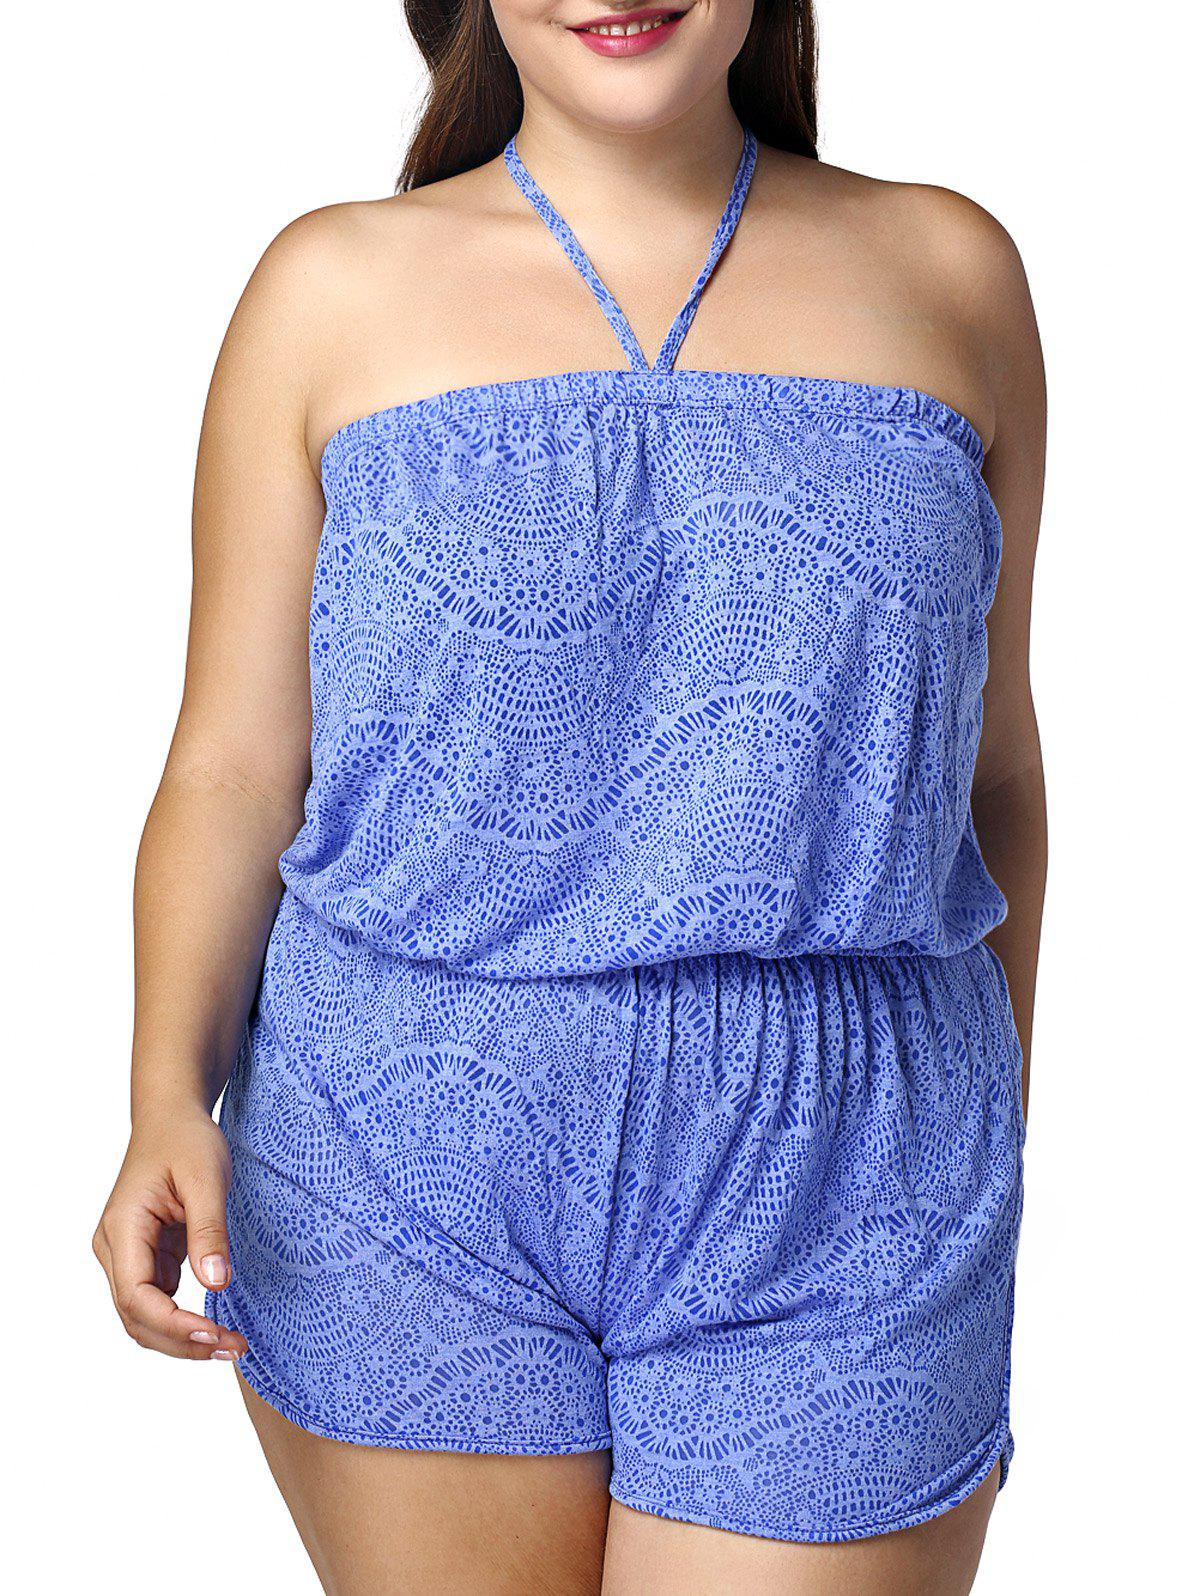 Casual Plus Size Printed Halter Women's Romper - AZURE 2XL